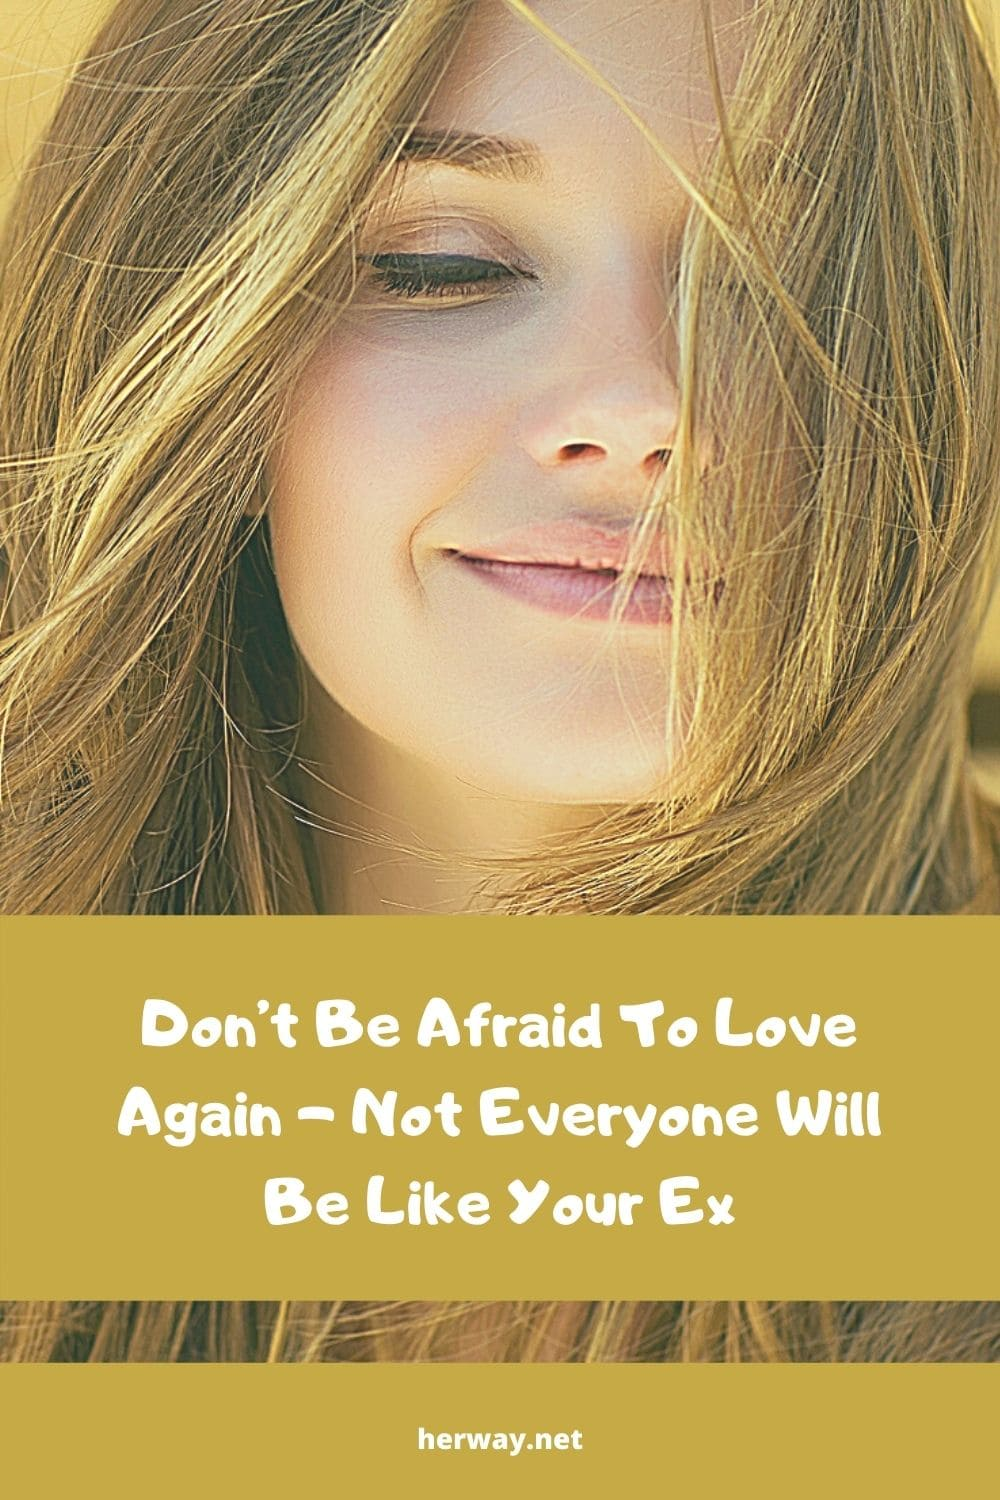 Don't Be Afraid To Love Again - Not Everyone Will Be Like Your Ex